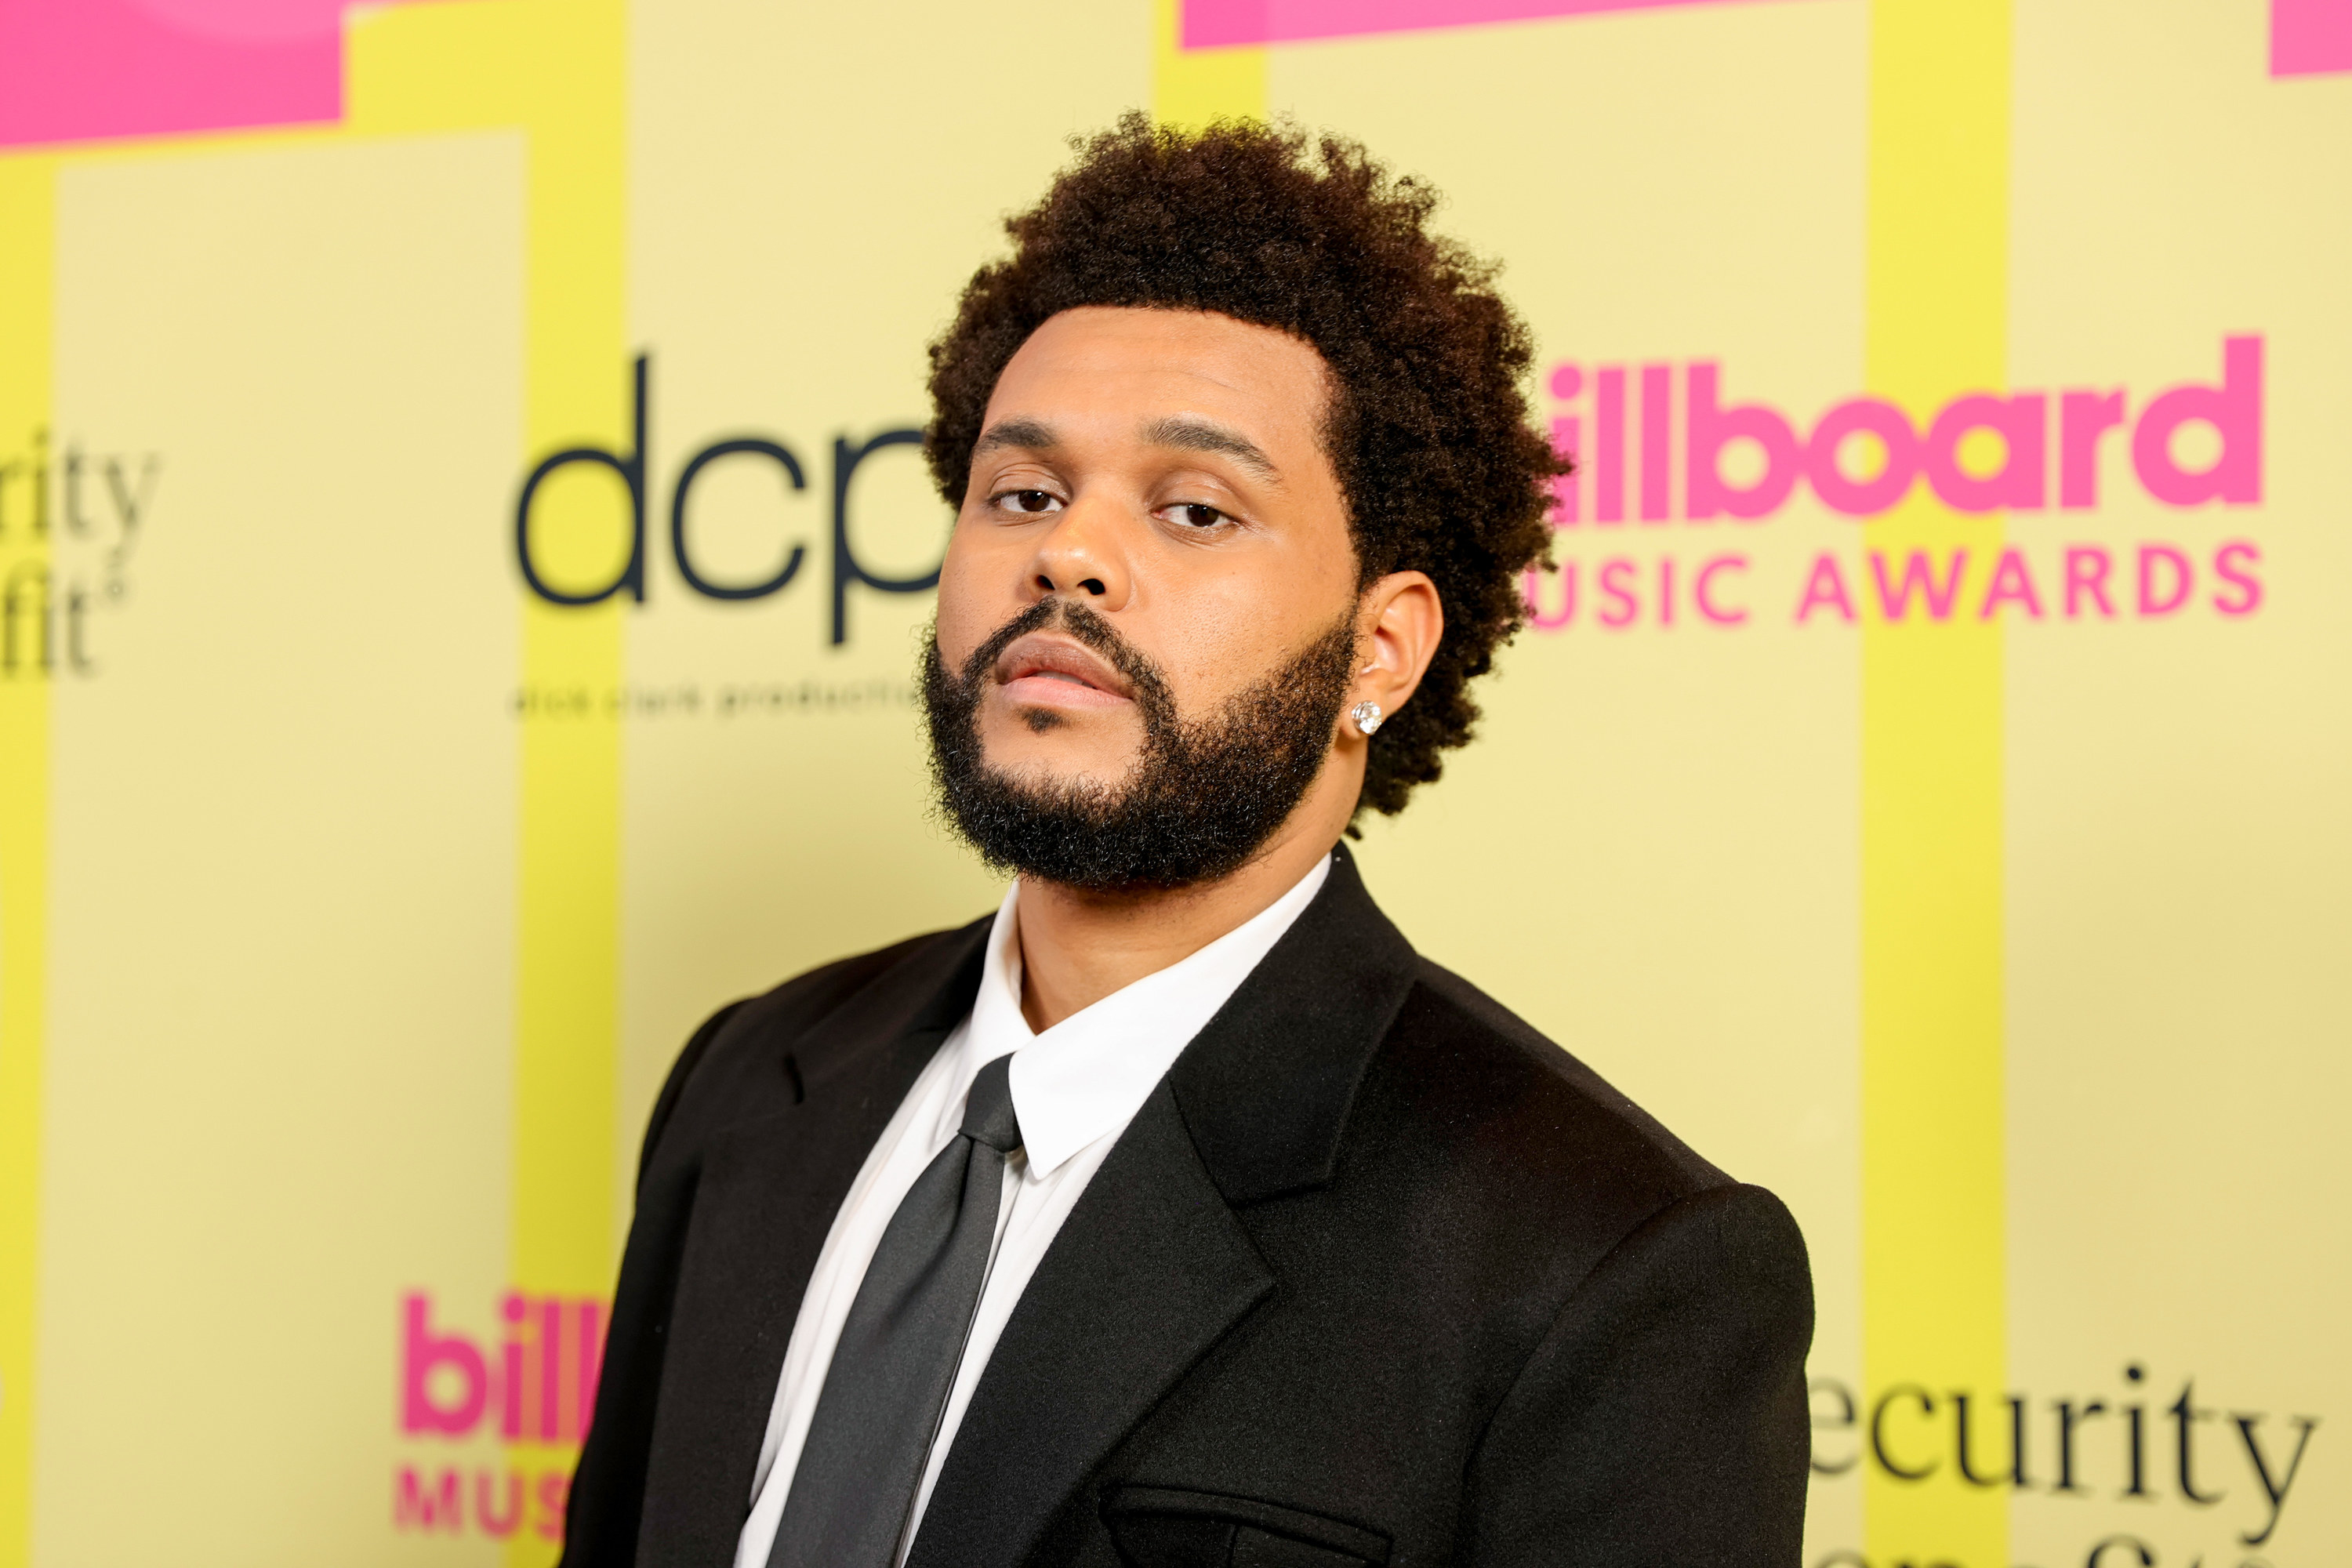 The Weeknd poses backstage for the 2021 Billboard Music Awards, broadcast on May 23, 2021, at Microsoft Theater in Los Angeles, California